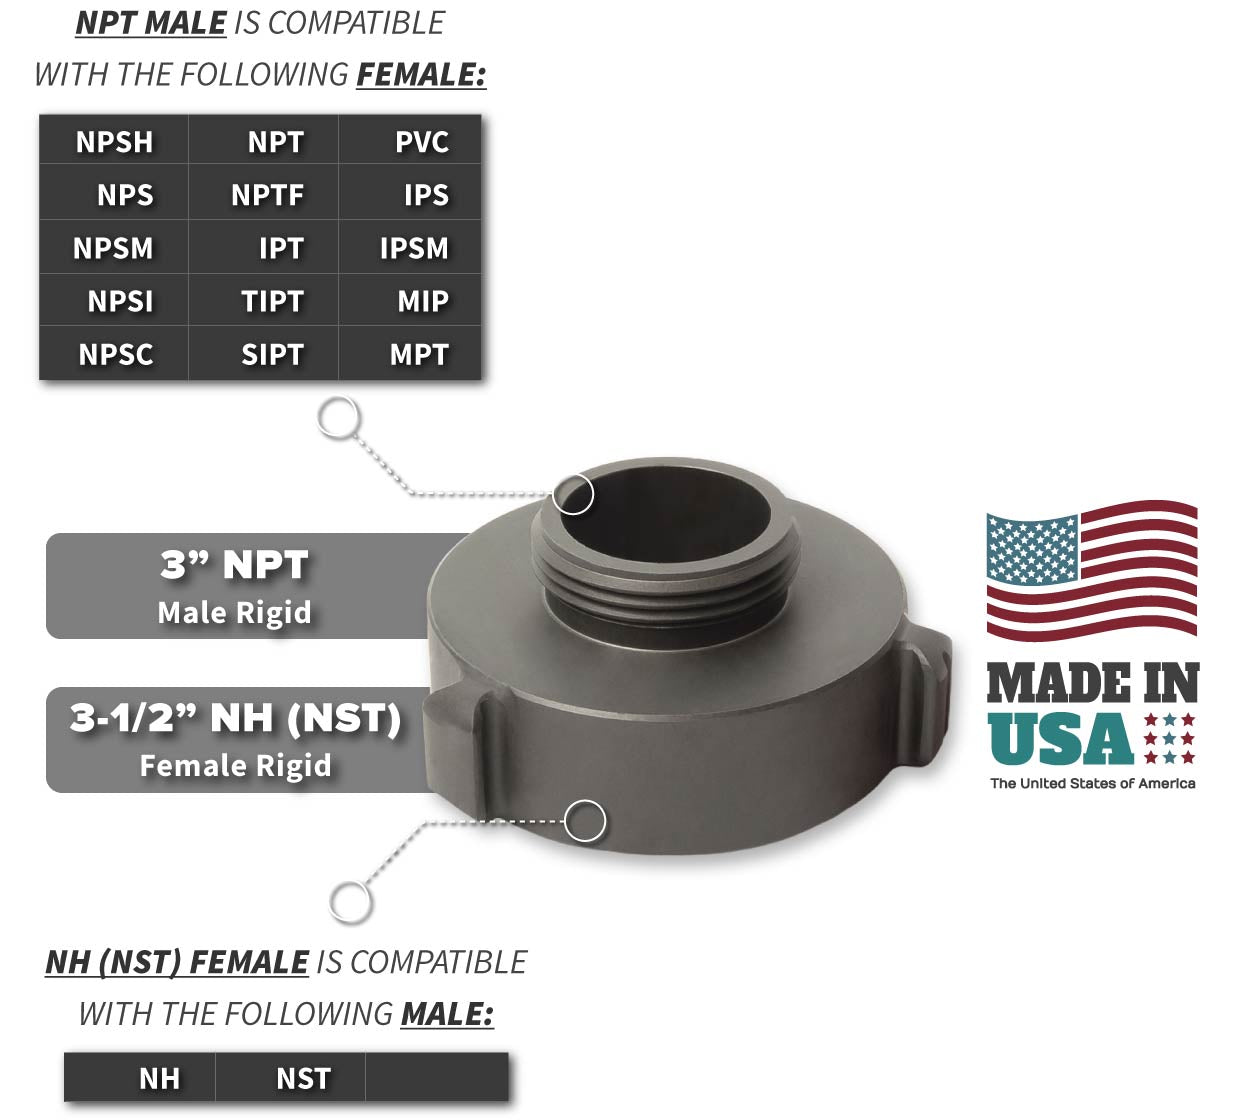 3.5 Inch NH-NST Female x 3 Inch NPT Male Compatibility Thread Chart